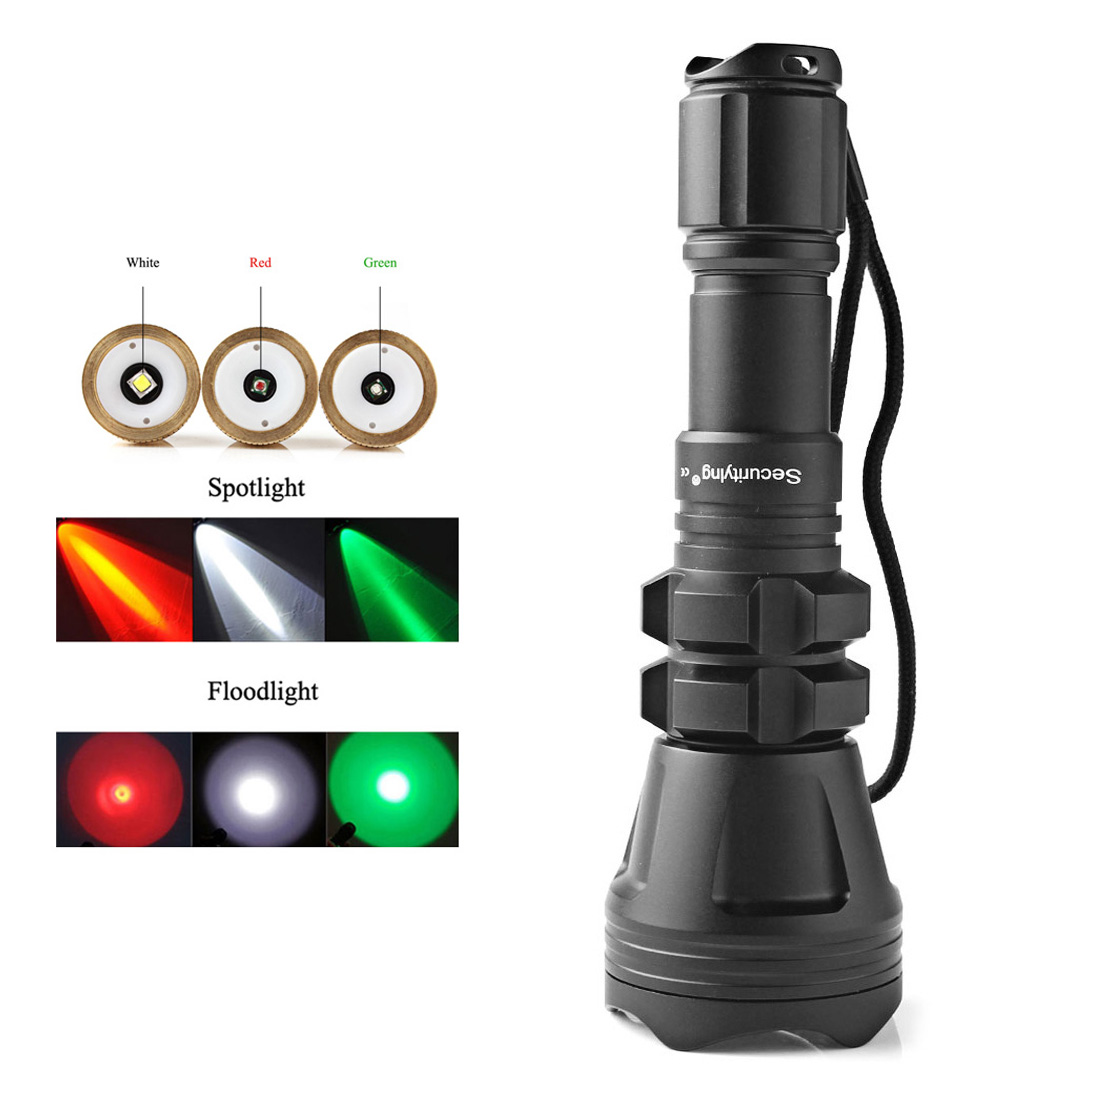 SecurityIng Waterproof Hunting Flashlight XM-L2 U4 White Led 900LM 5 Modes Zoomable Torch with Remote Pressure Switch 2000 lumens cree xm l t6 5 modes led tactical flashlight torch waterproof lamp torch hunting flash light lantern for camping